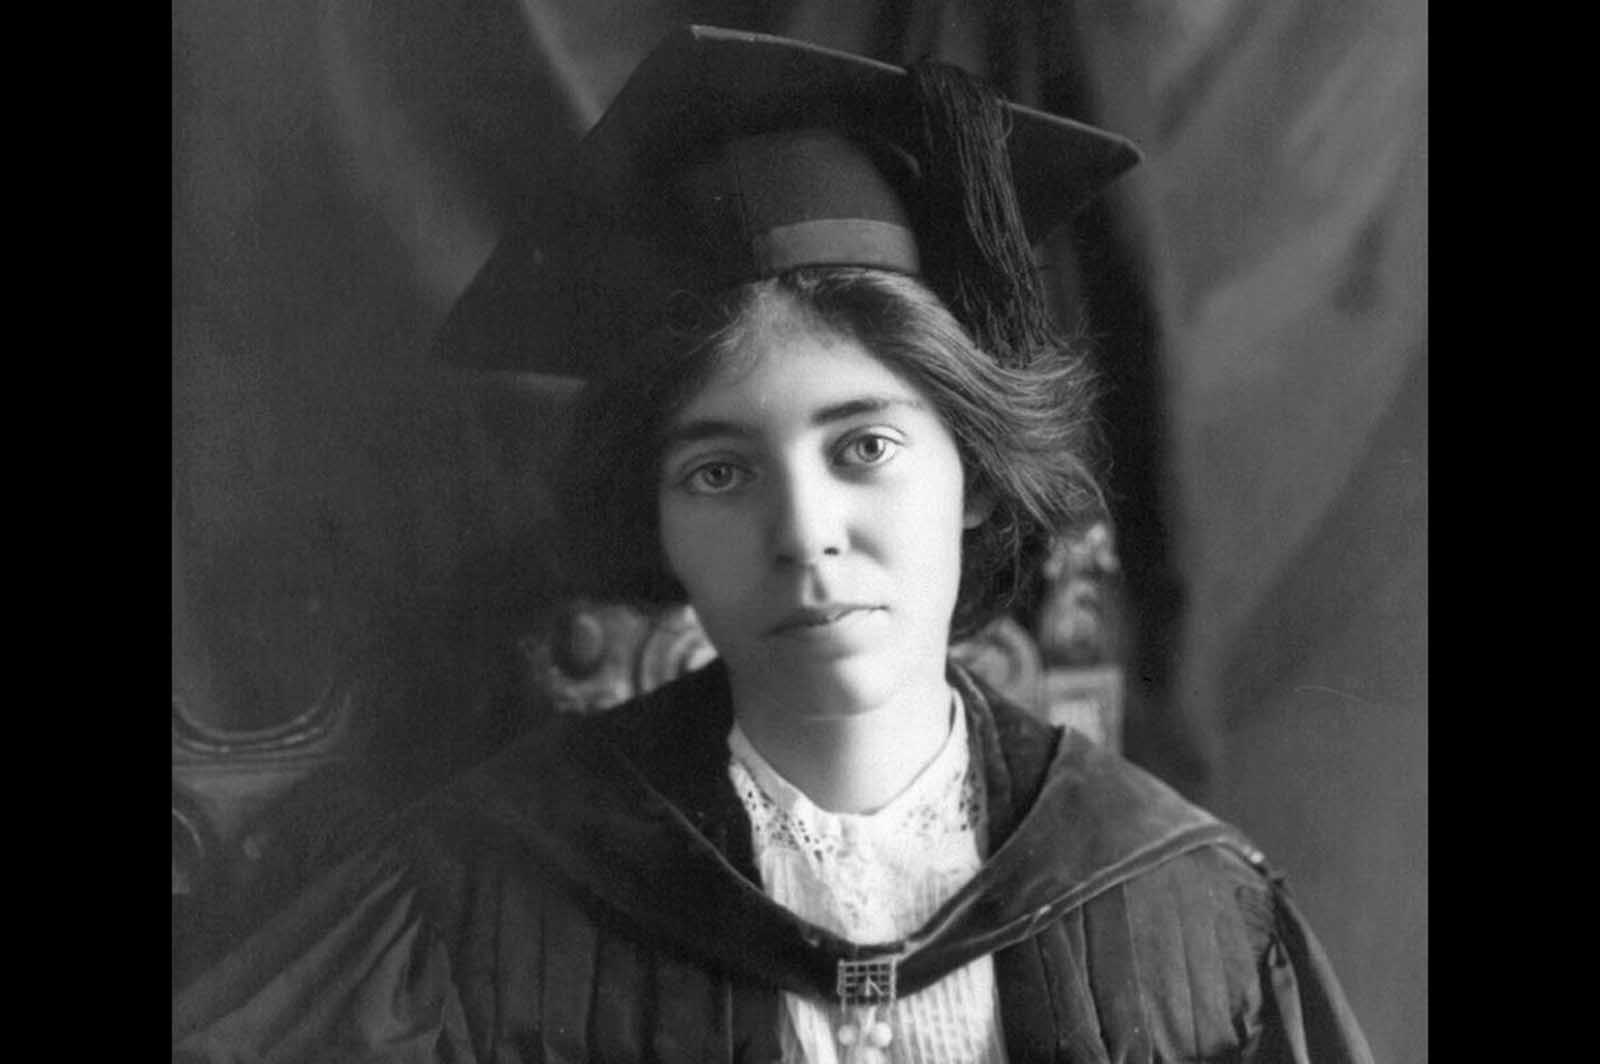 Suffragist Alice Paul, in a 1913 photograph. Paul was born in New Jersey, earned an M.A. and Ph.D. from the University of Pennsylvania, then traveled to England and became friends with members of the women's suffrage movement there. She soon became very active herself, and, on returning to the United States soon after, joined the National American Woman Suffrage Association (NAWSA). Her first actions as part of NAWSA were to organize a massive parade in Washington, District of Columbia, to promote a new constitutional amendment that would guarantee women's right to vote in the U.S.